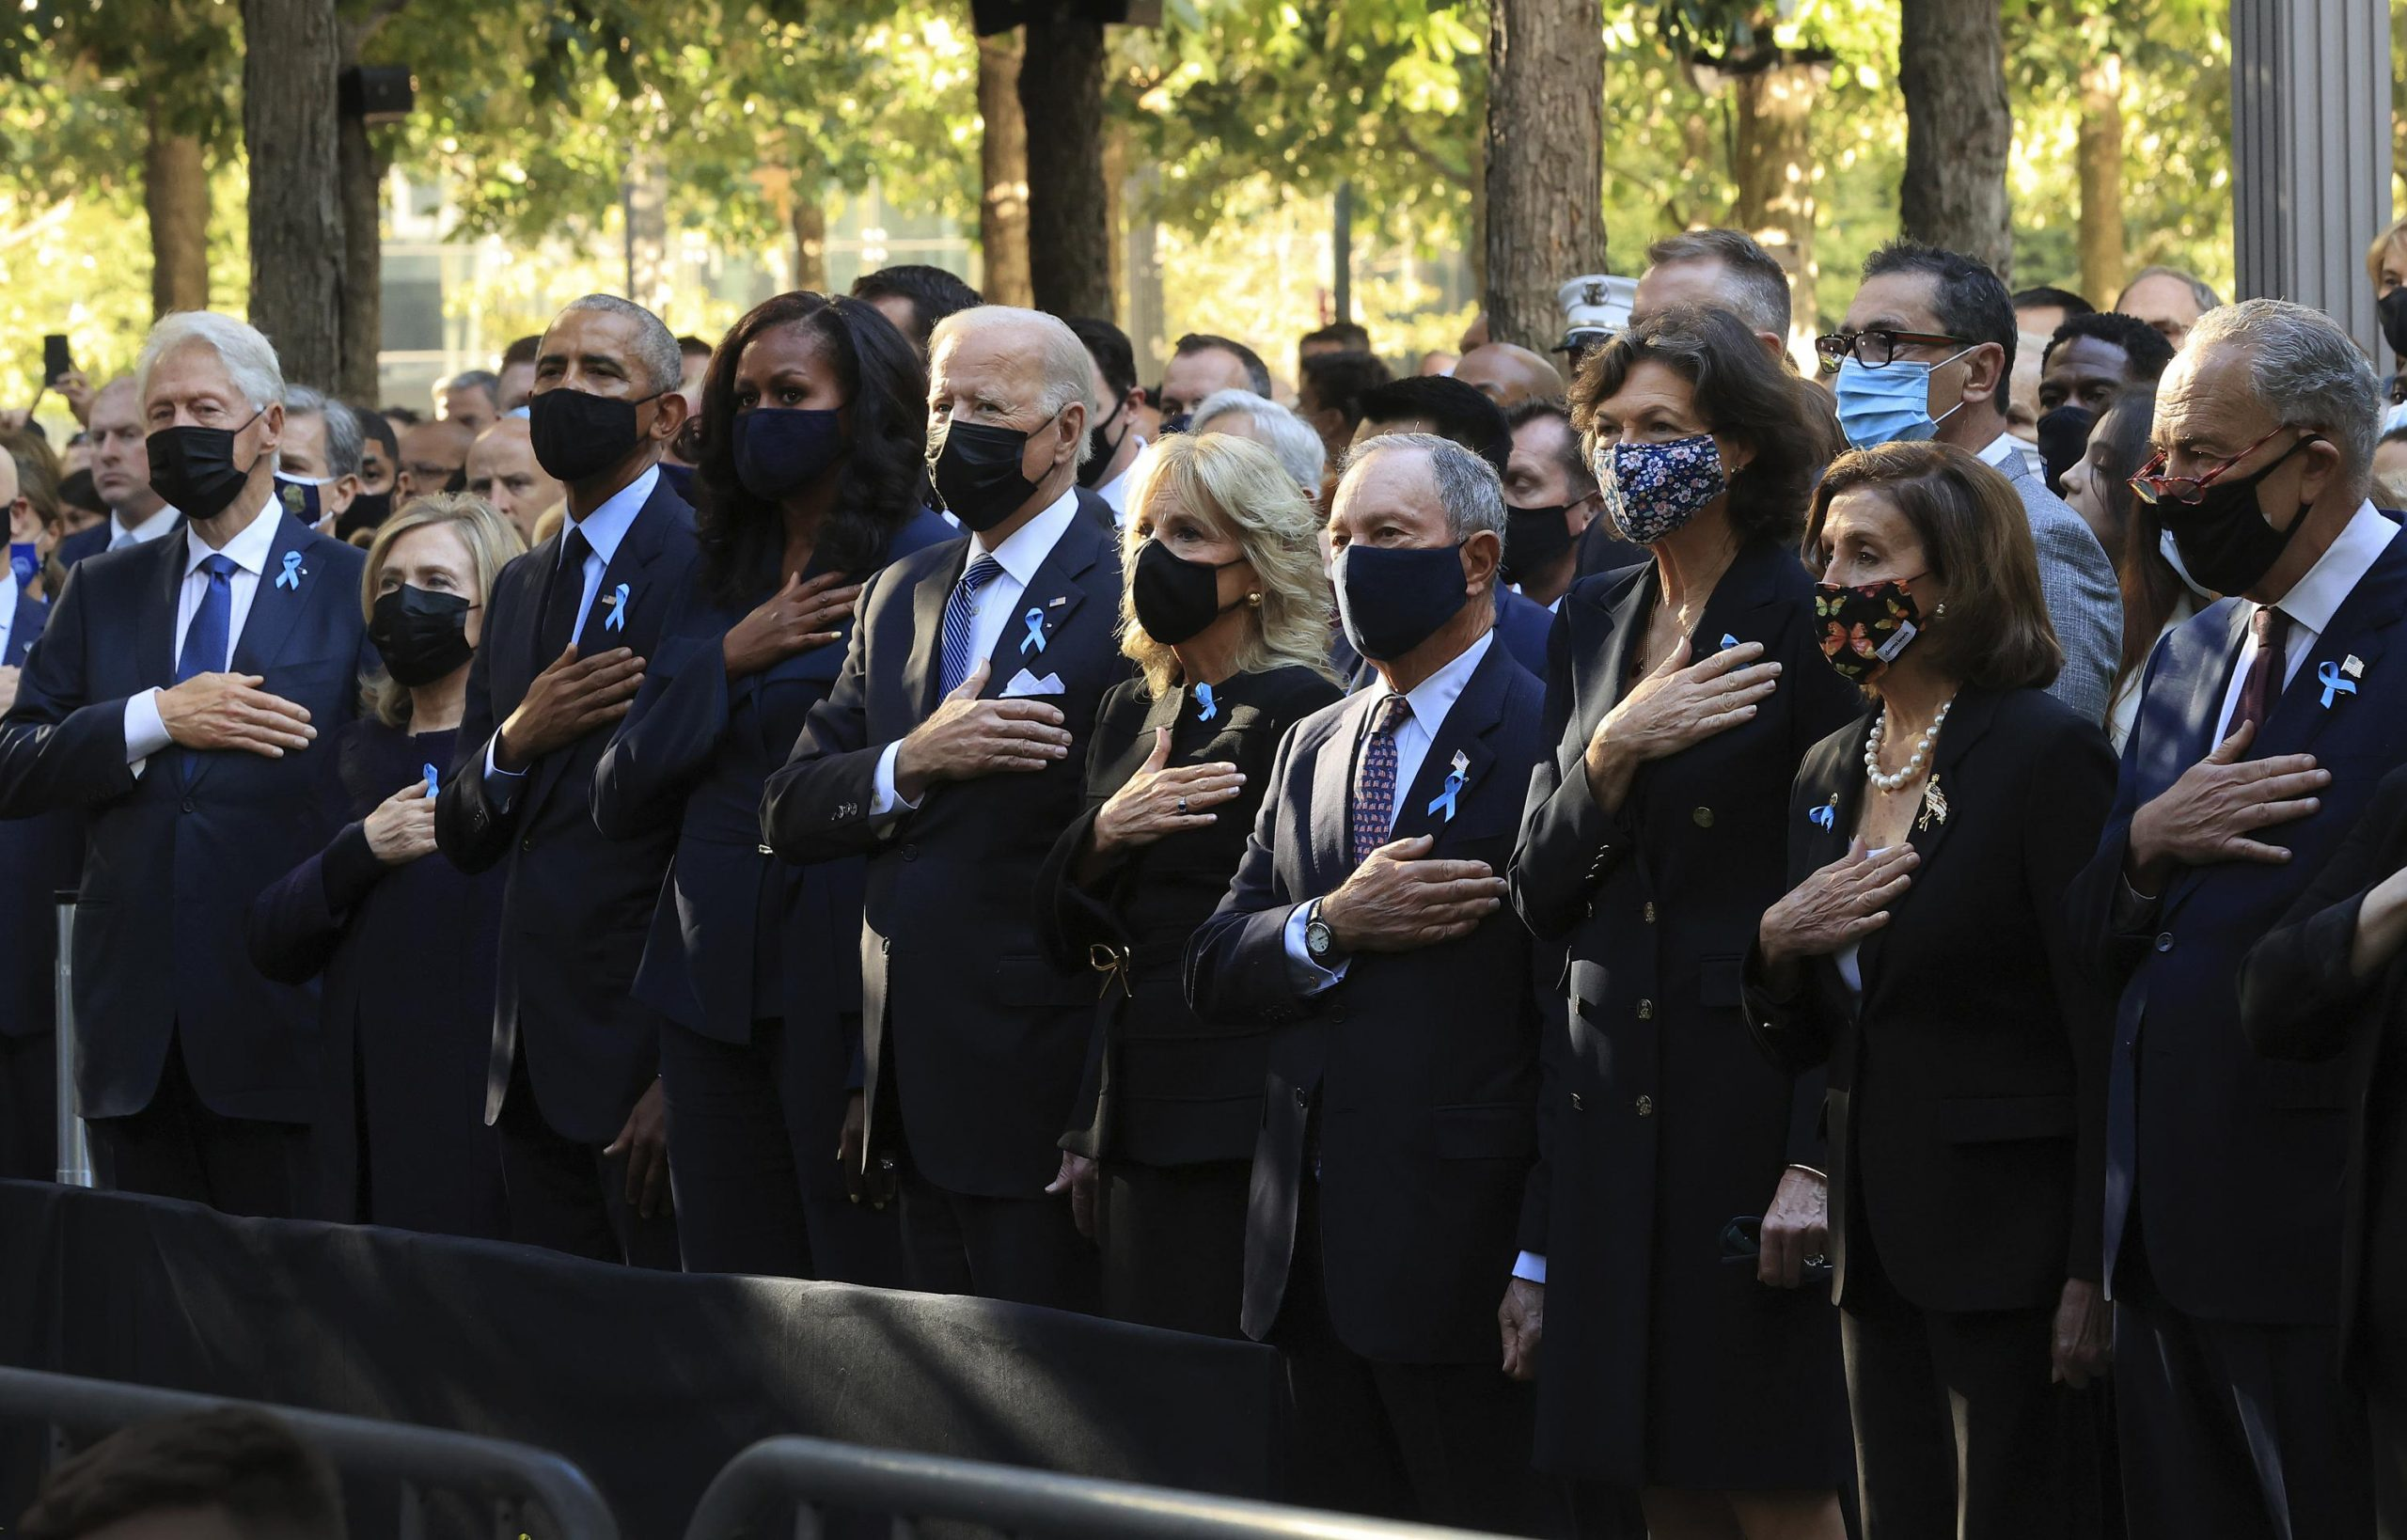 Unity a theme as 3 presidents commemorate 9/11 in New York